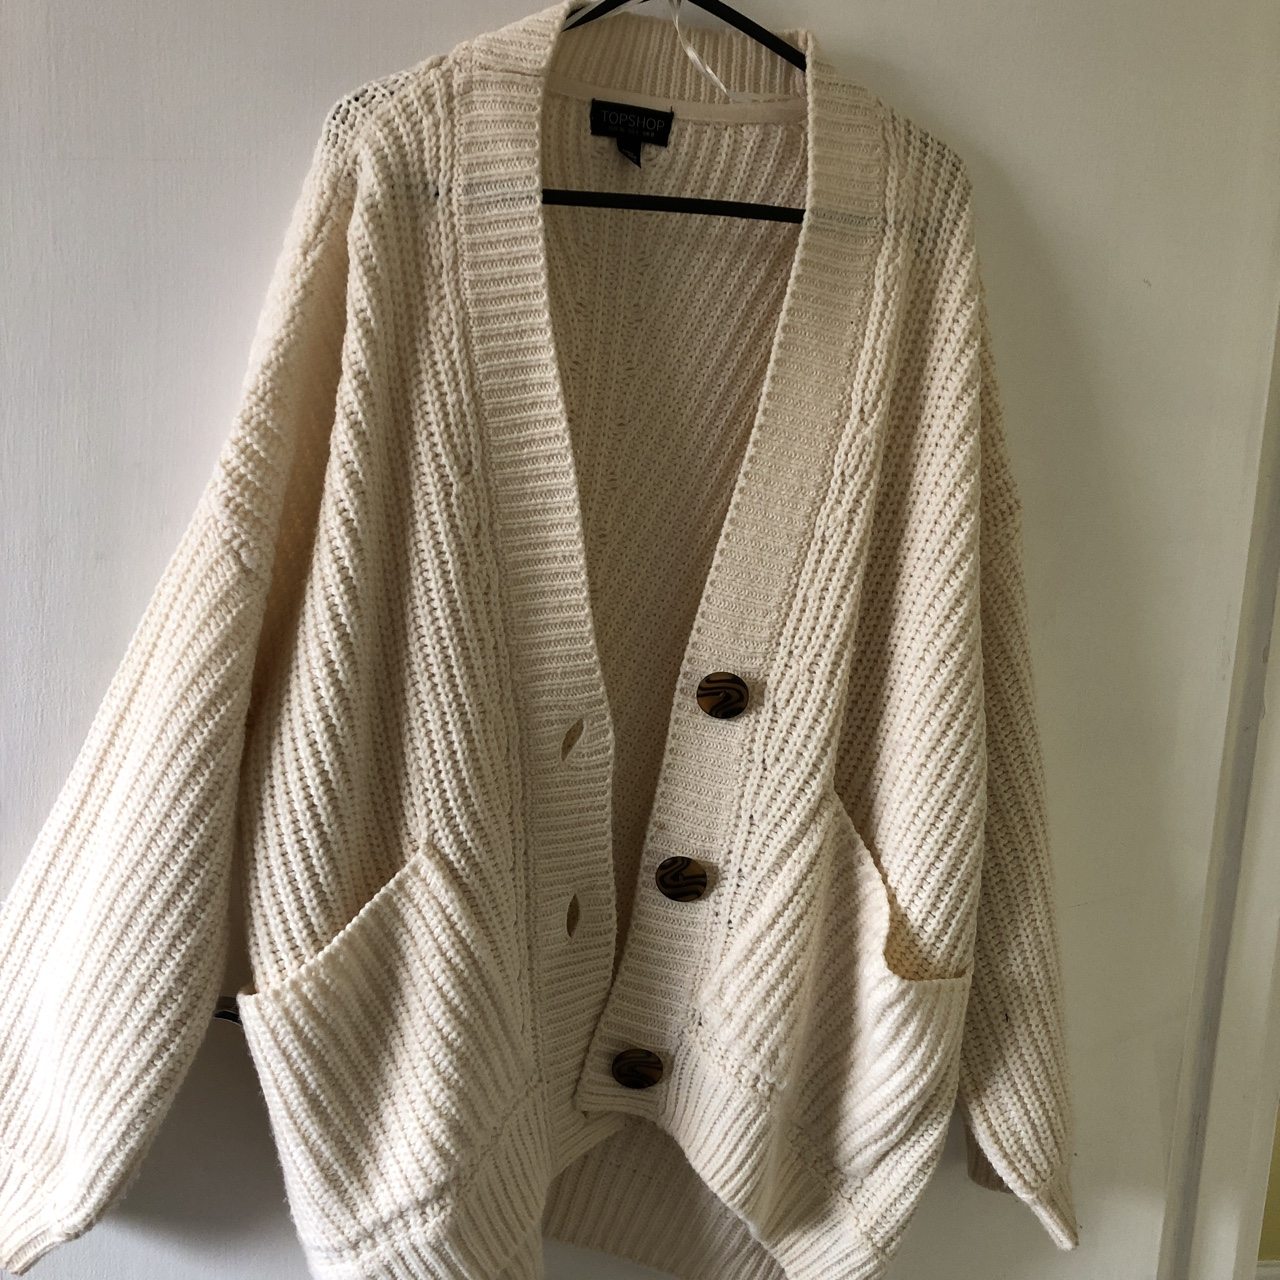 Topshop oversized cream chunky knit cardigan with Depop